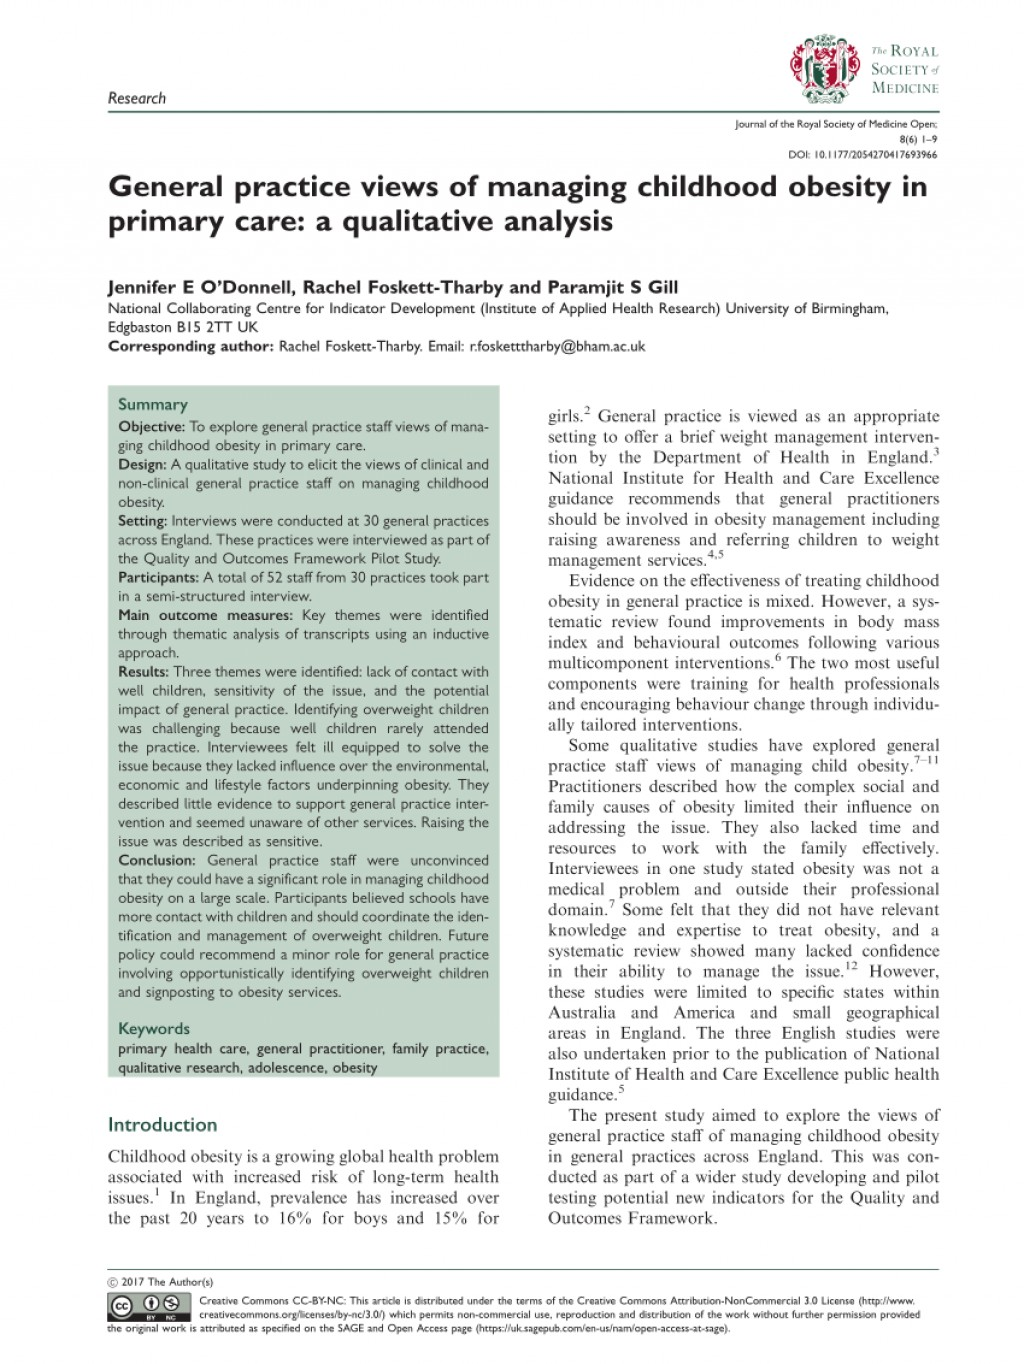 008 Primary Research Article On Childhood Obesity Paper Imposing Large